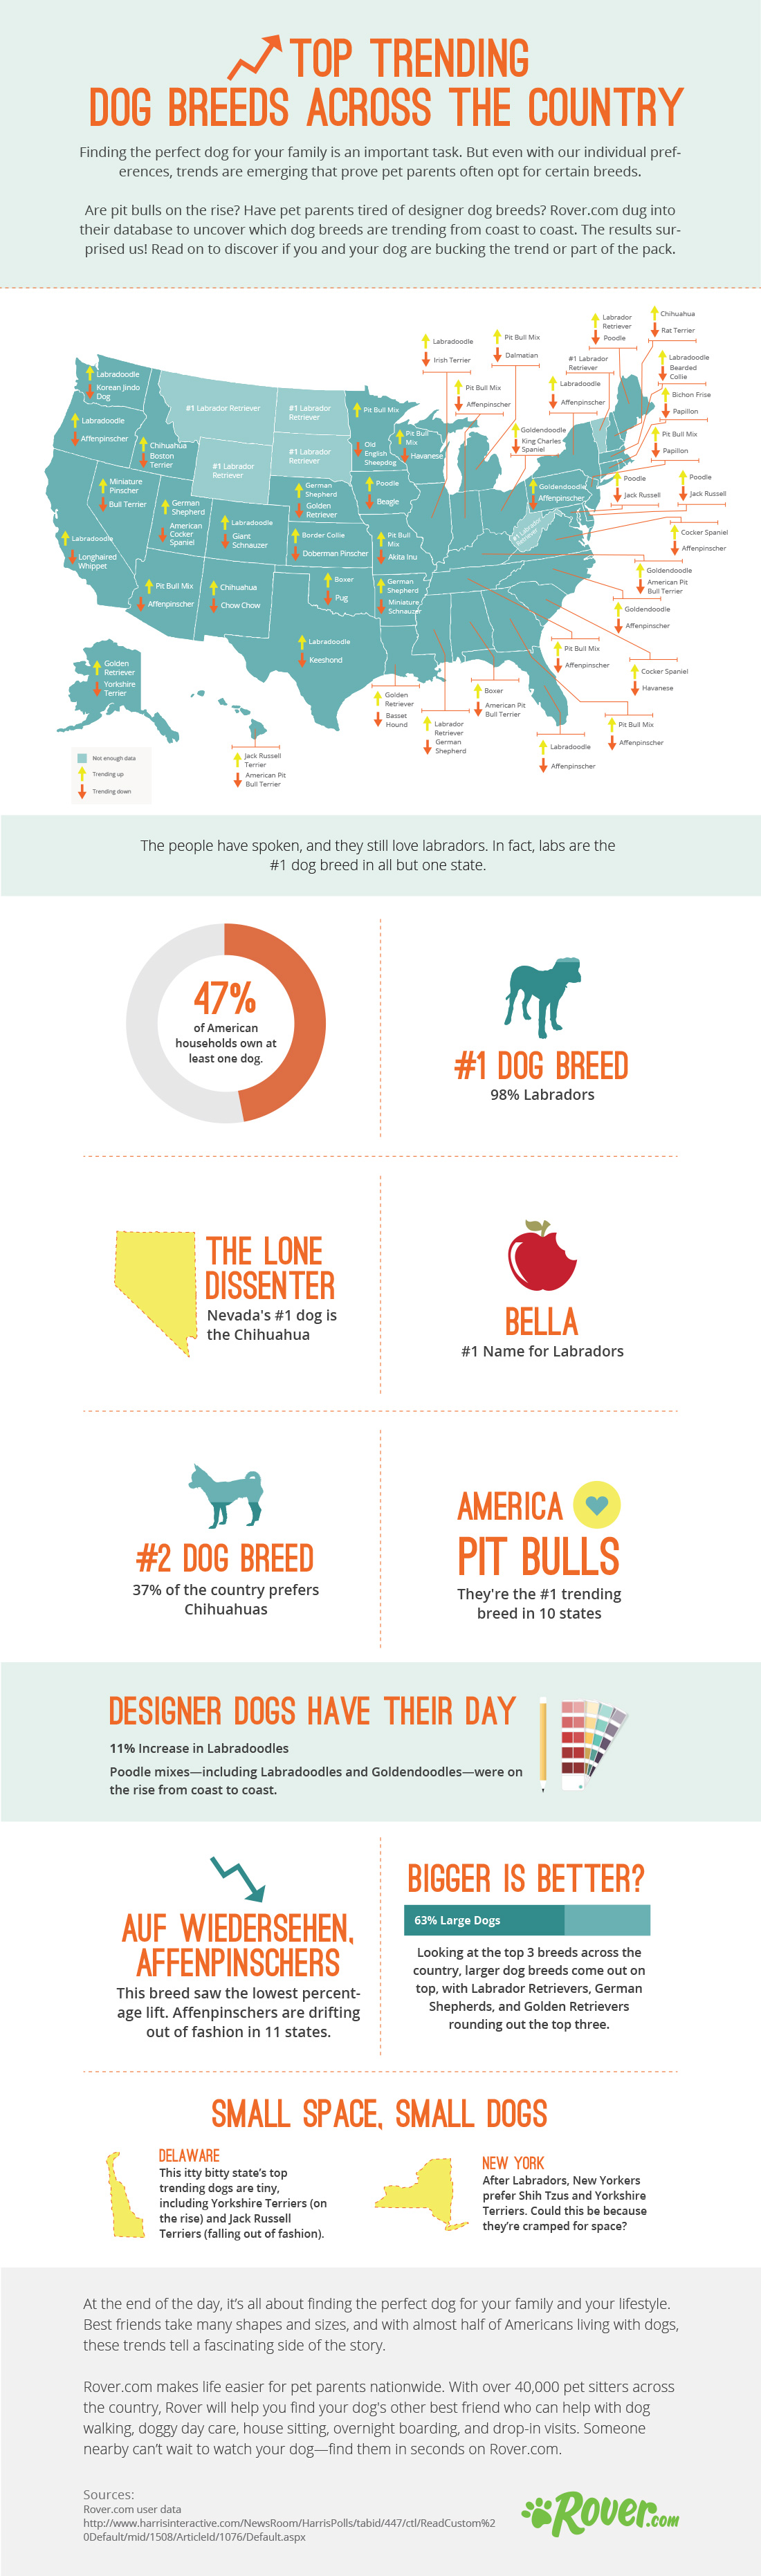 Top-Trending-Dog-Breeds-by-State-Infographic-2